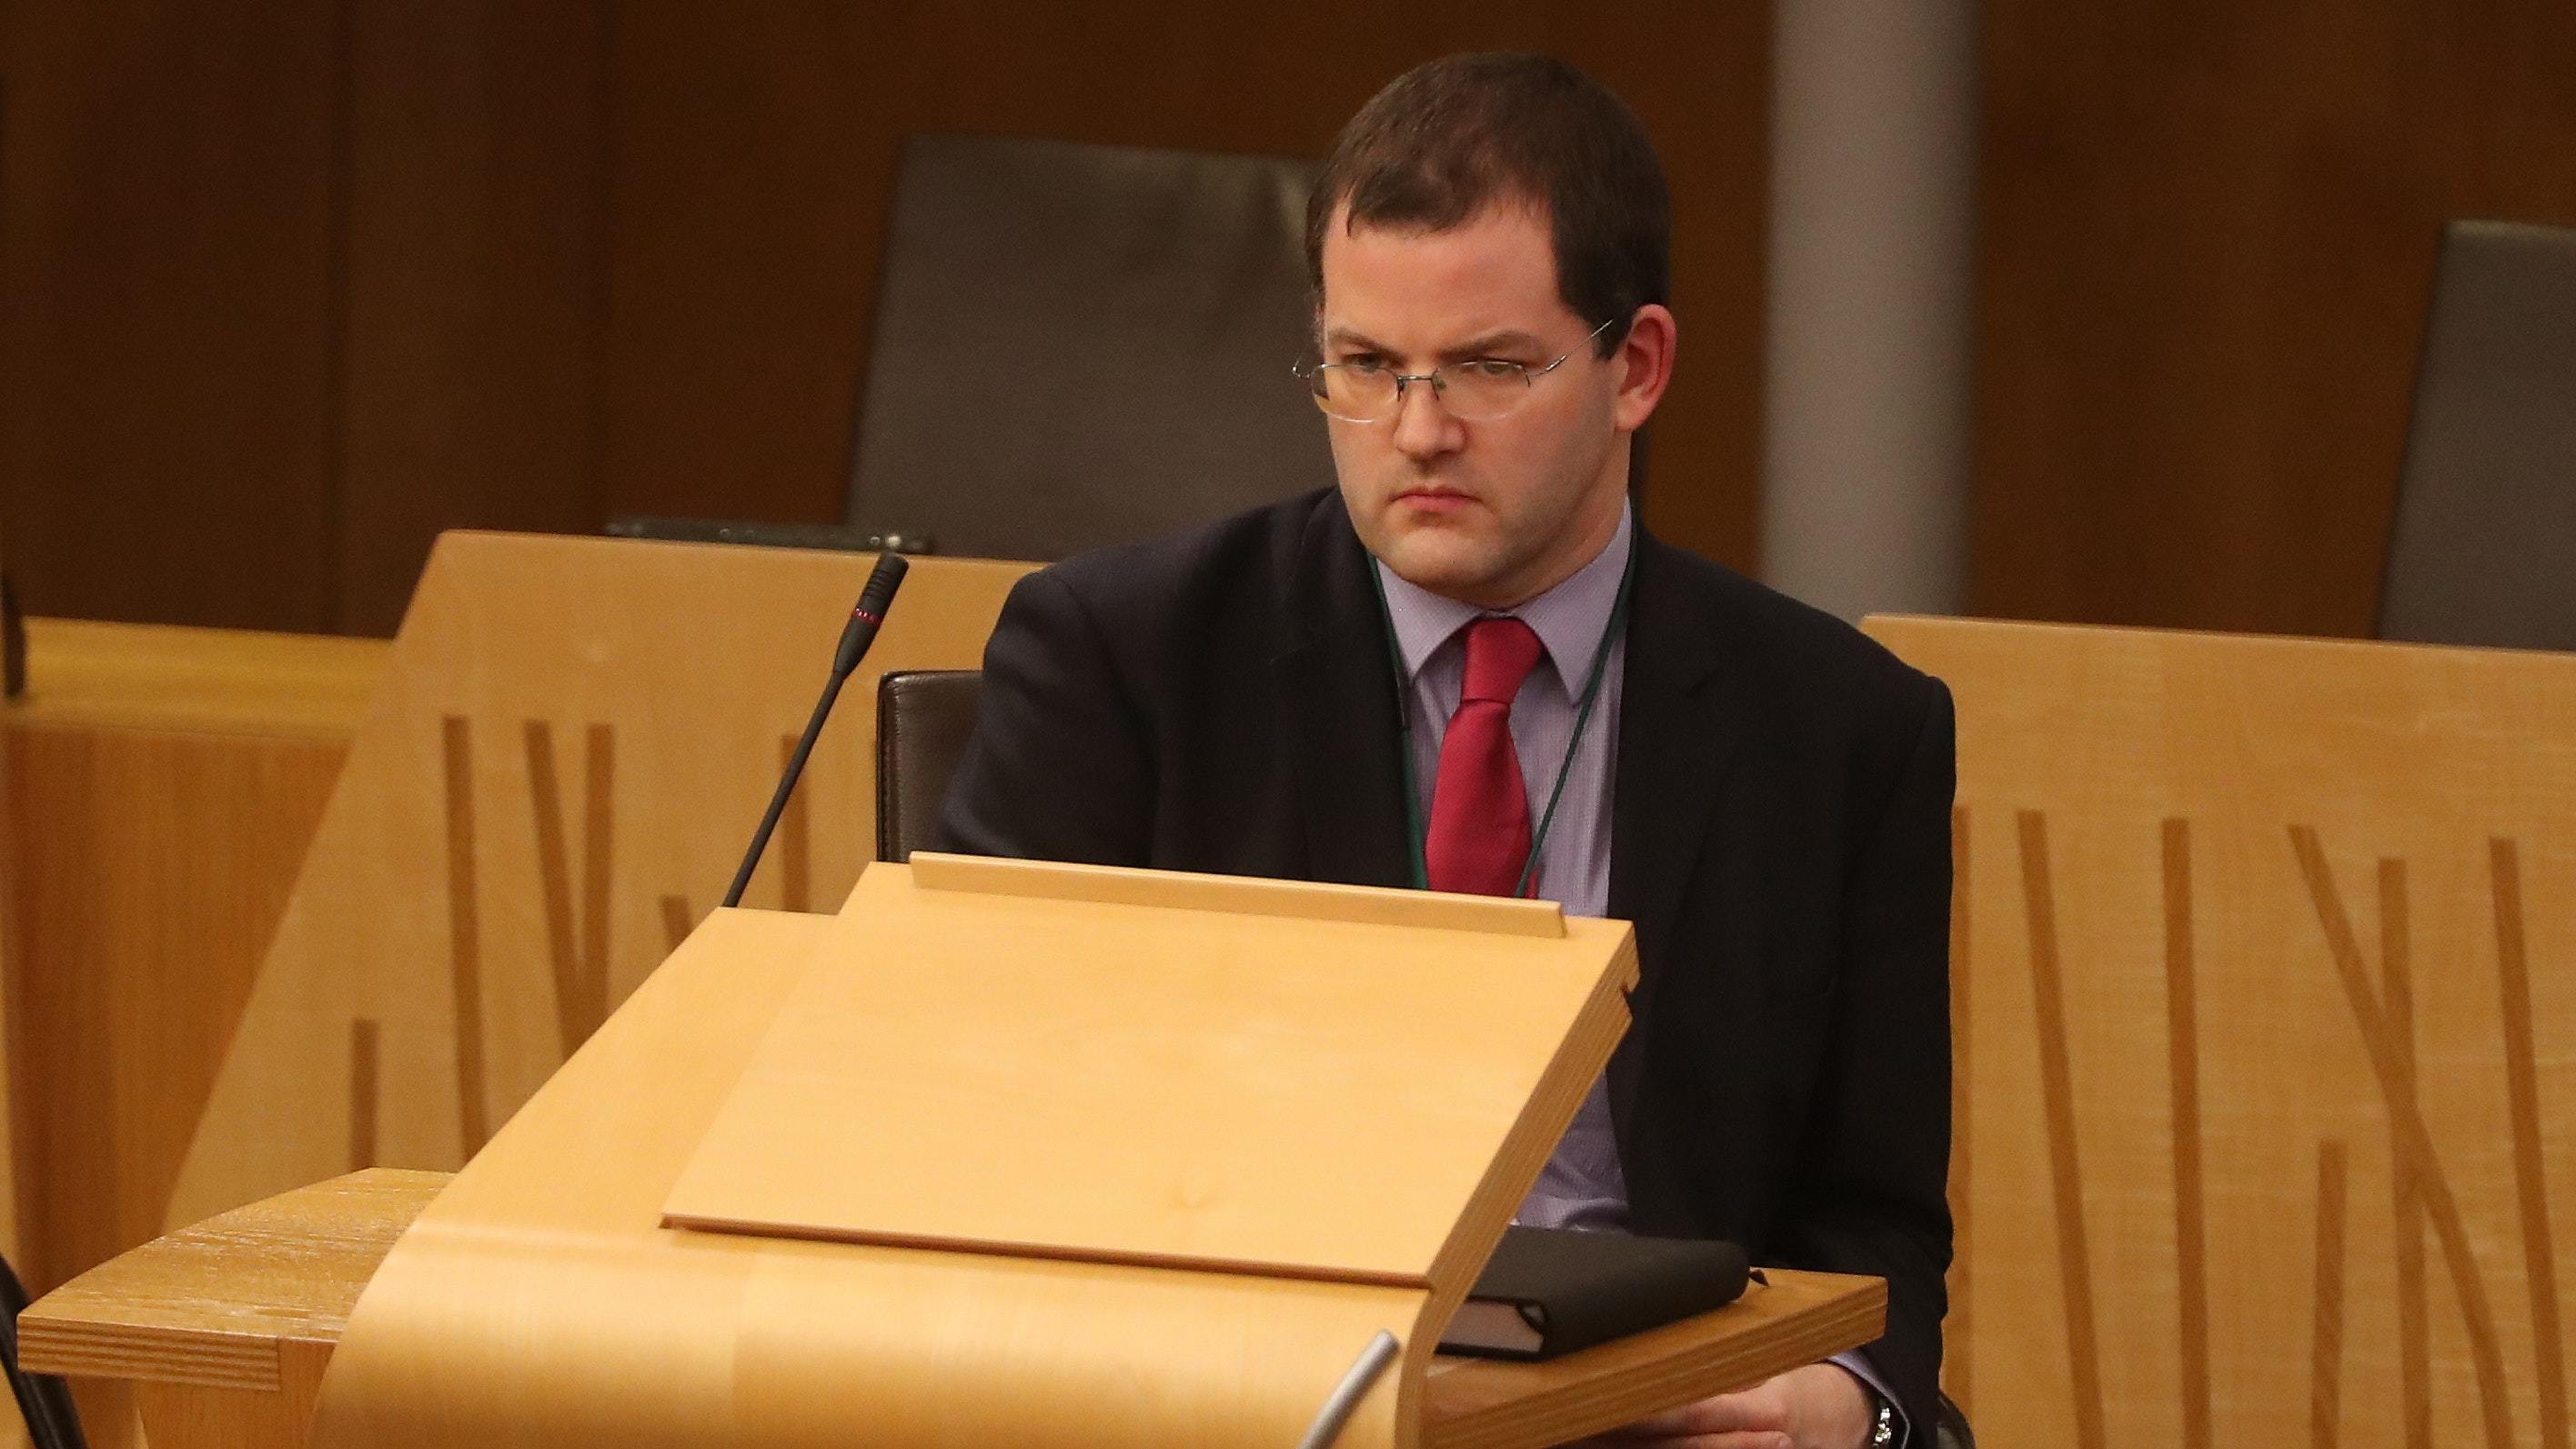 A Scottish Parliament committee wants the Commissioner for Ethical Standards in Public Life to investigate a complaint about Mark McDonald